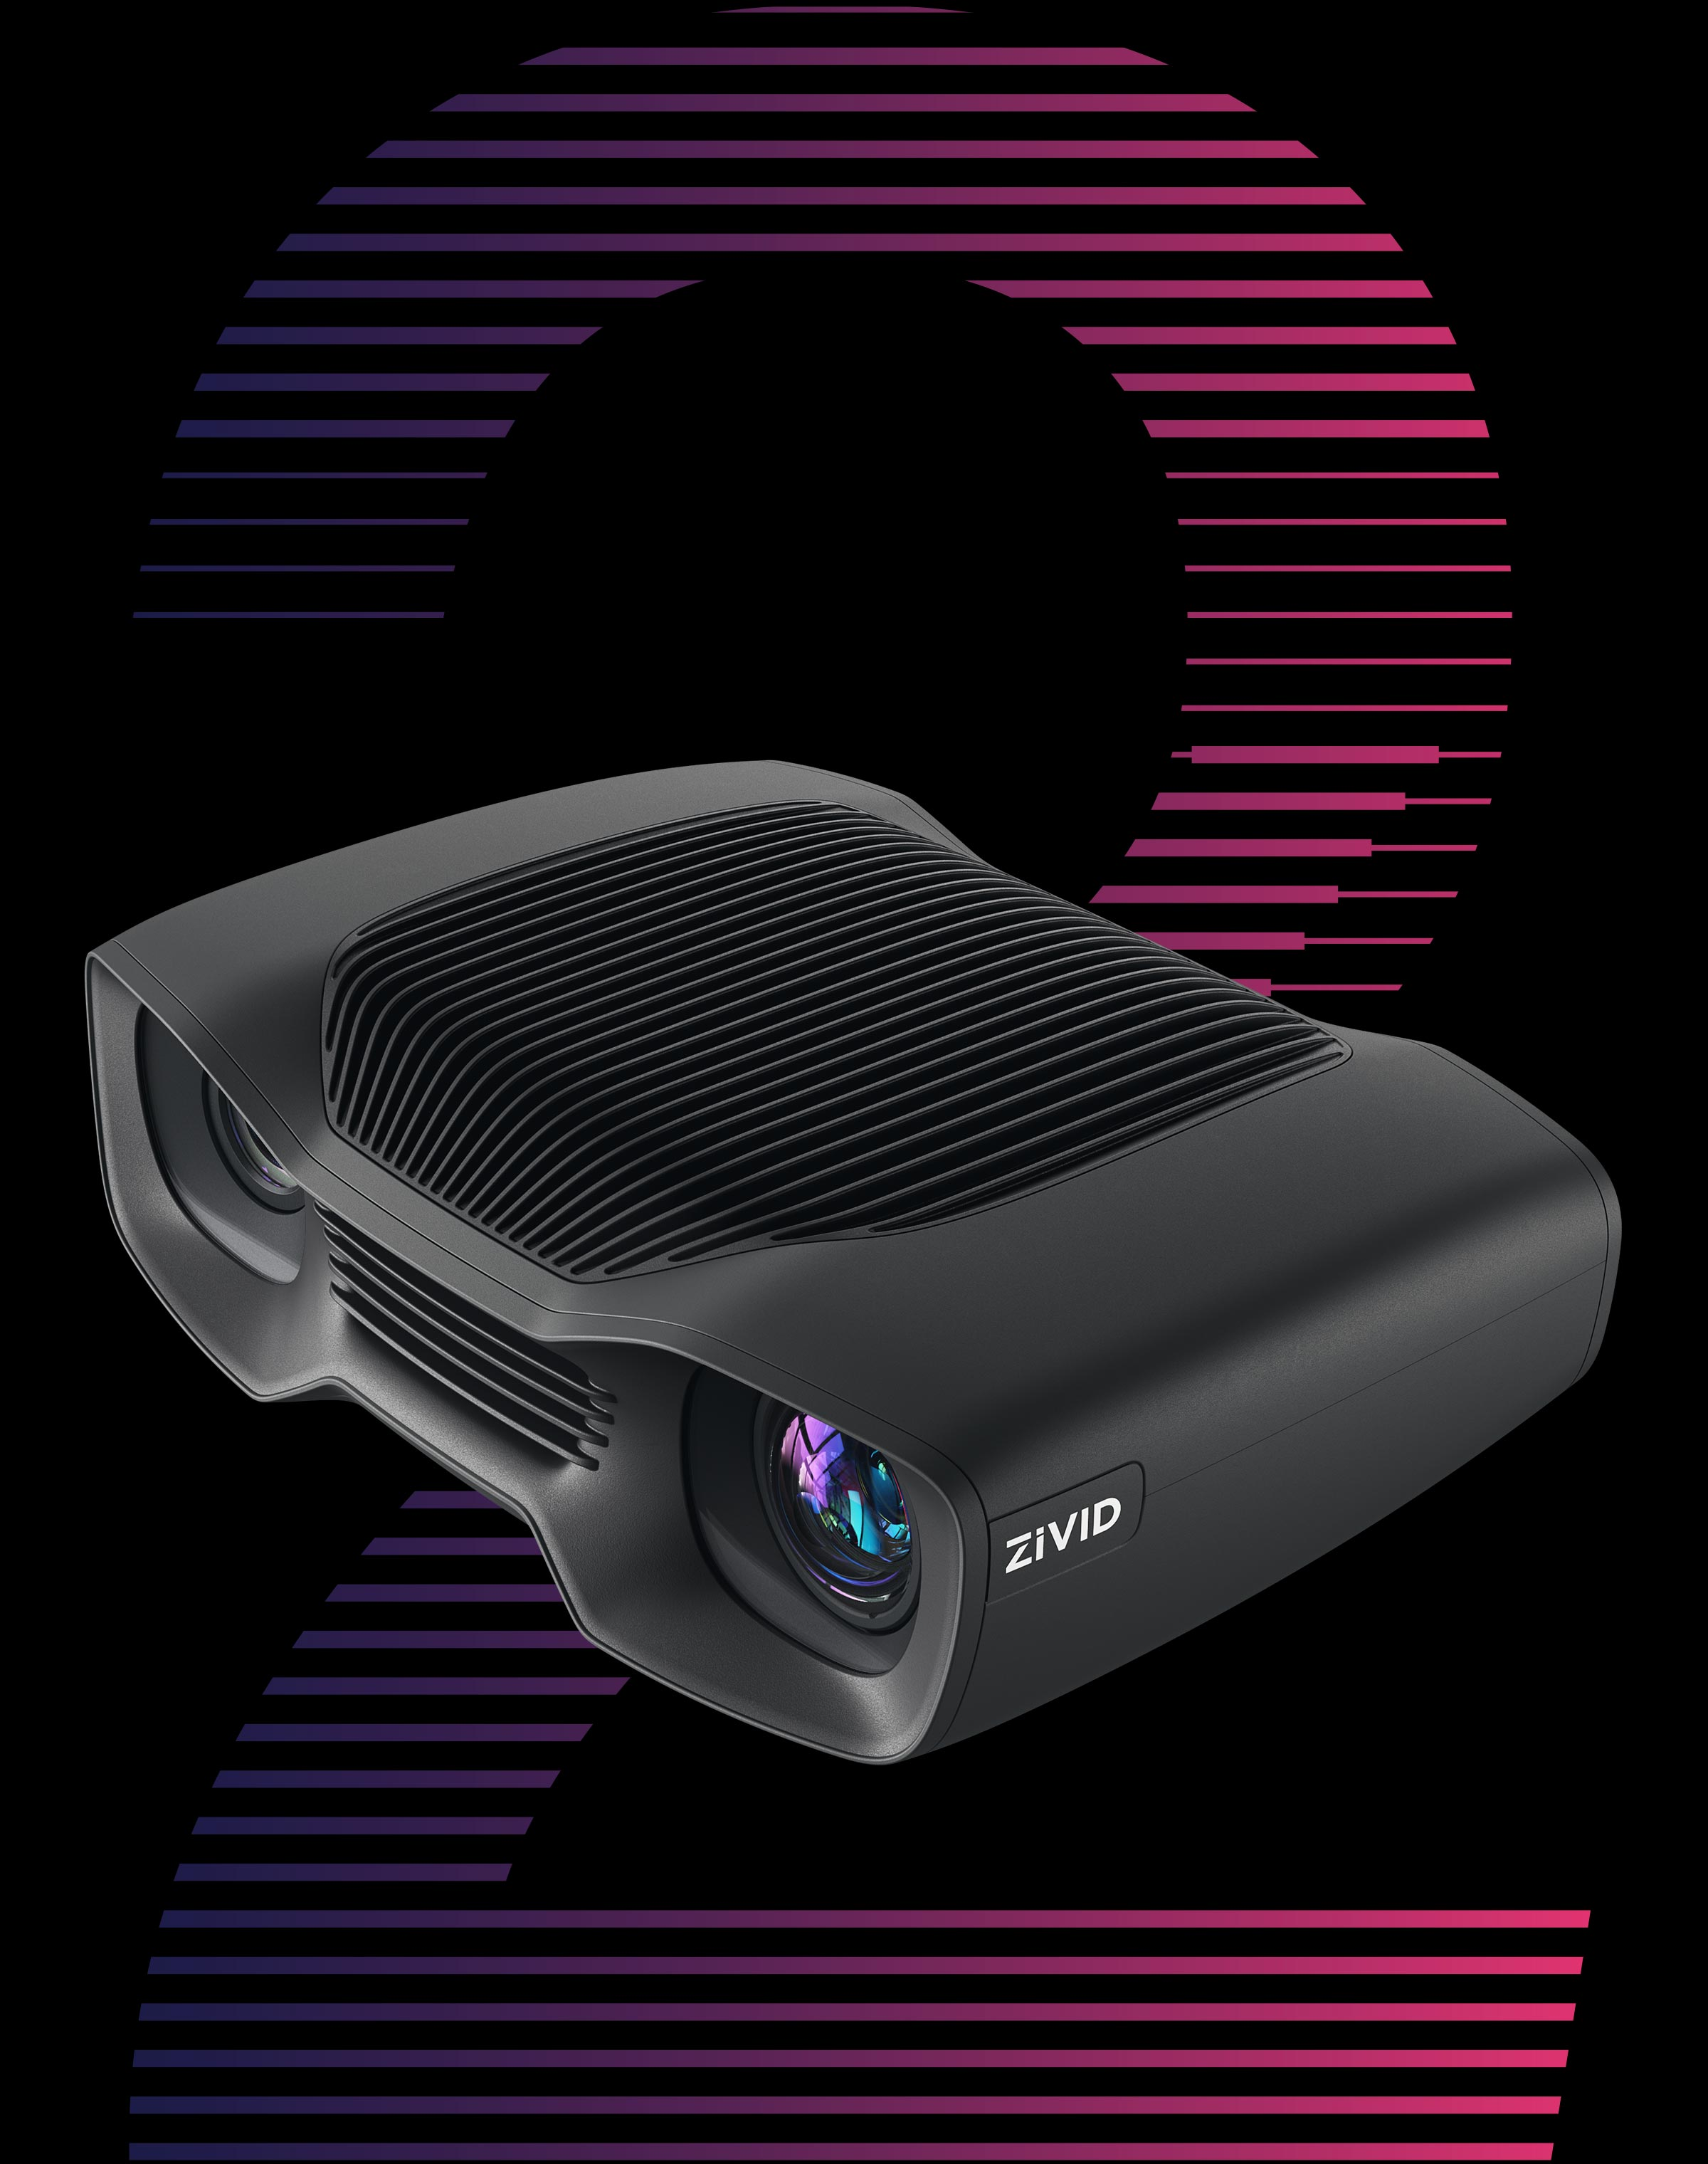 Zivid Two Industrial 3D color camera for bin-picking, assembly, and machine tending.